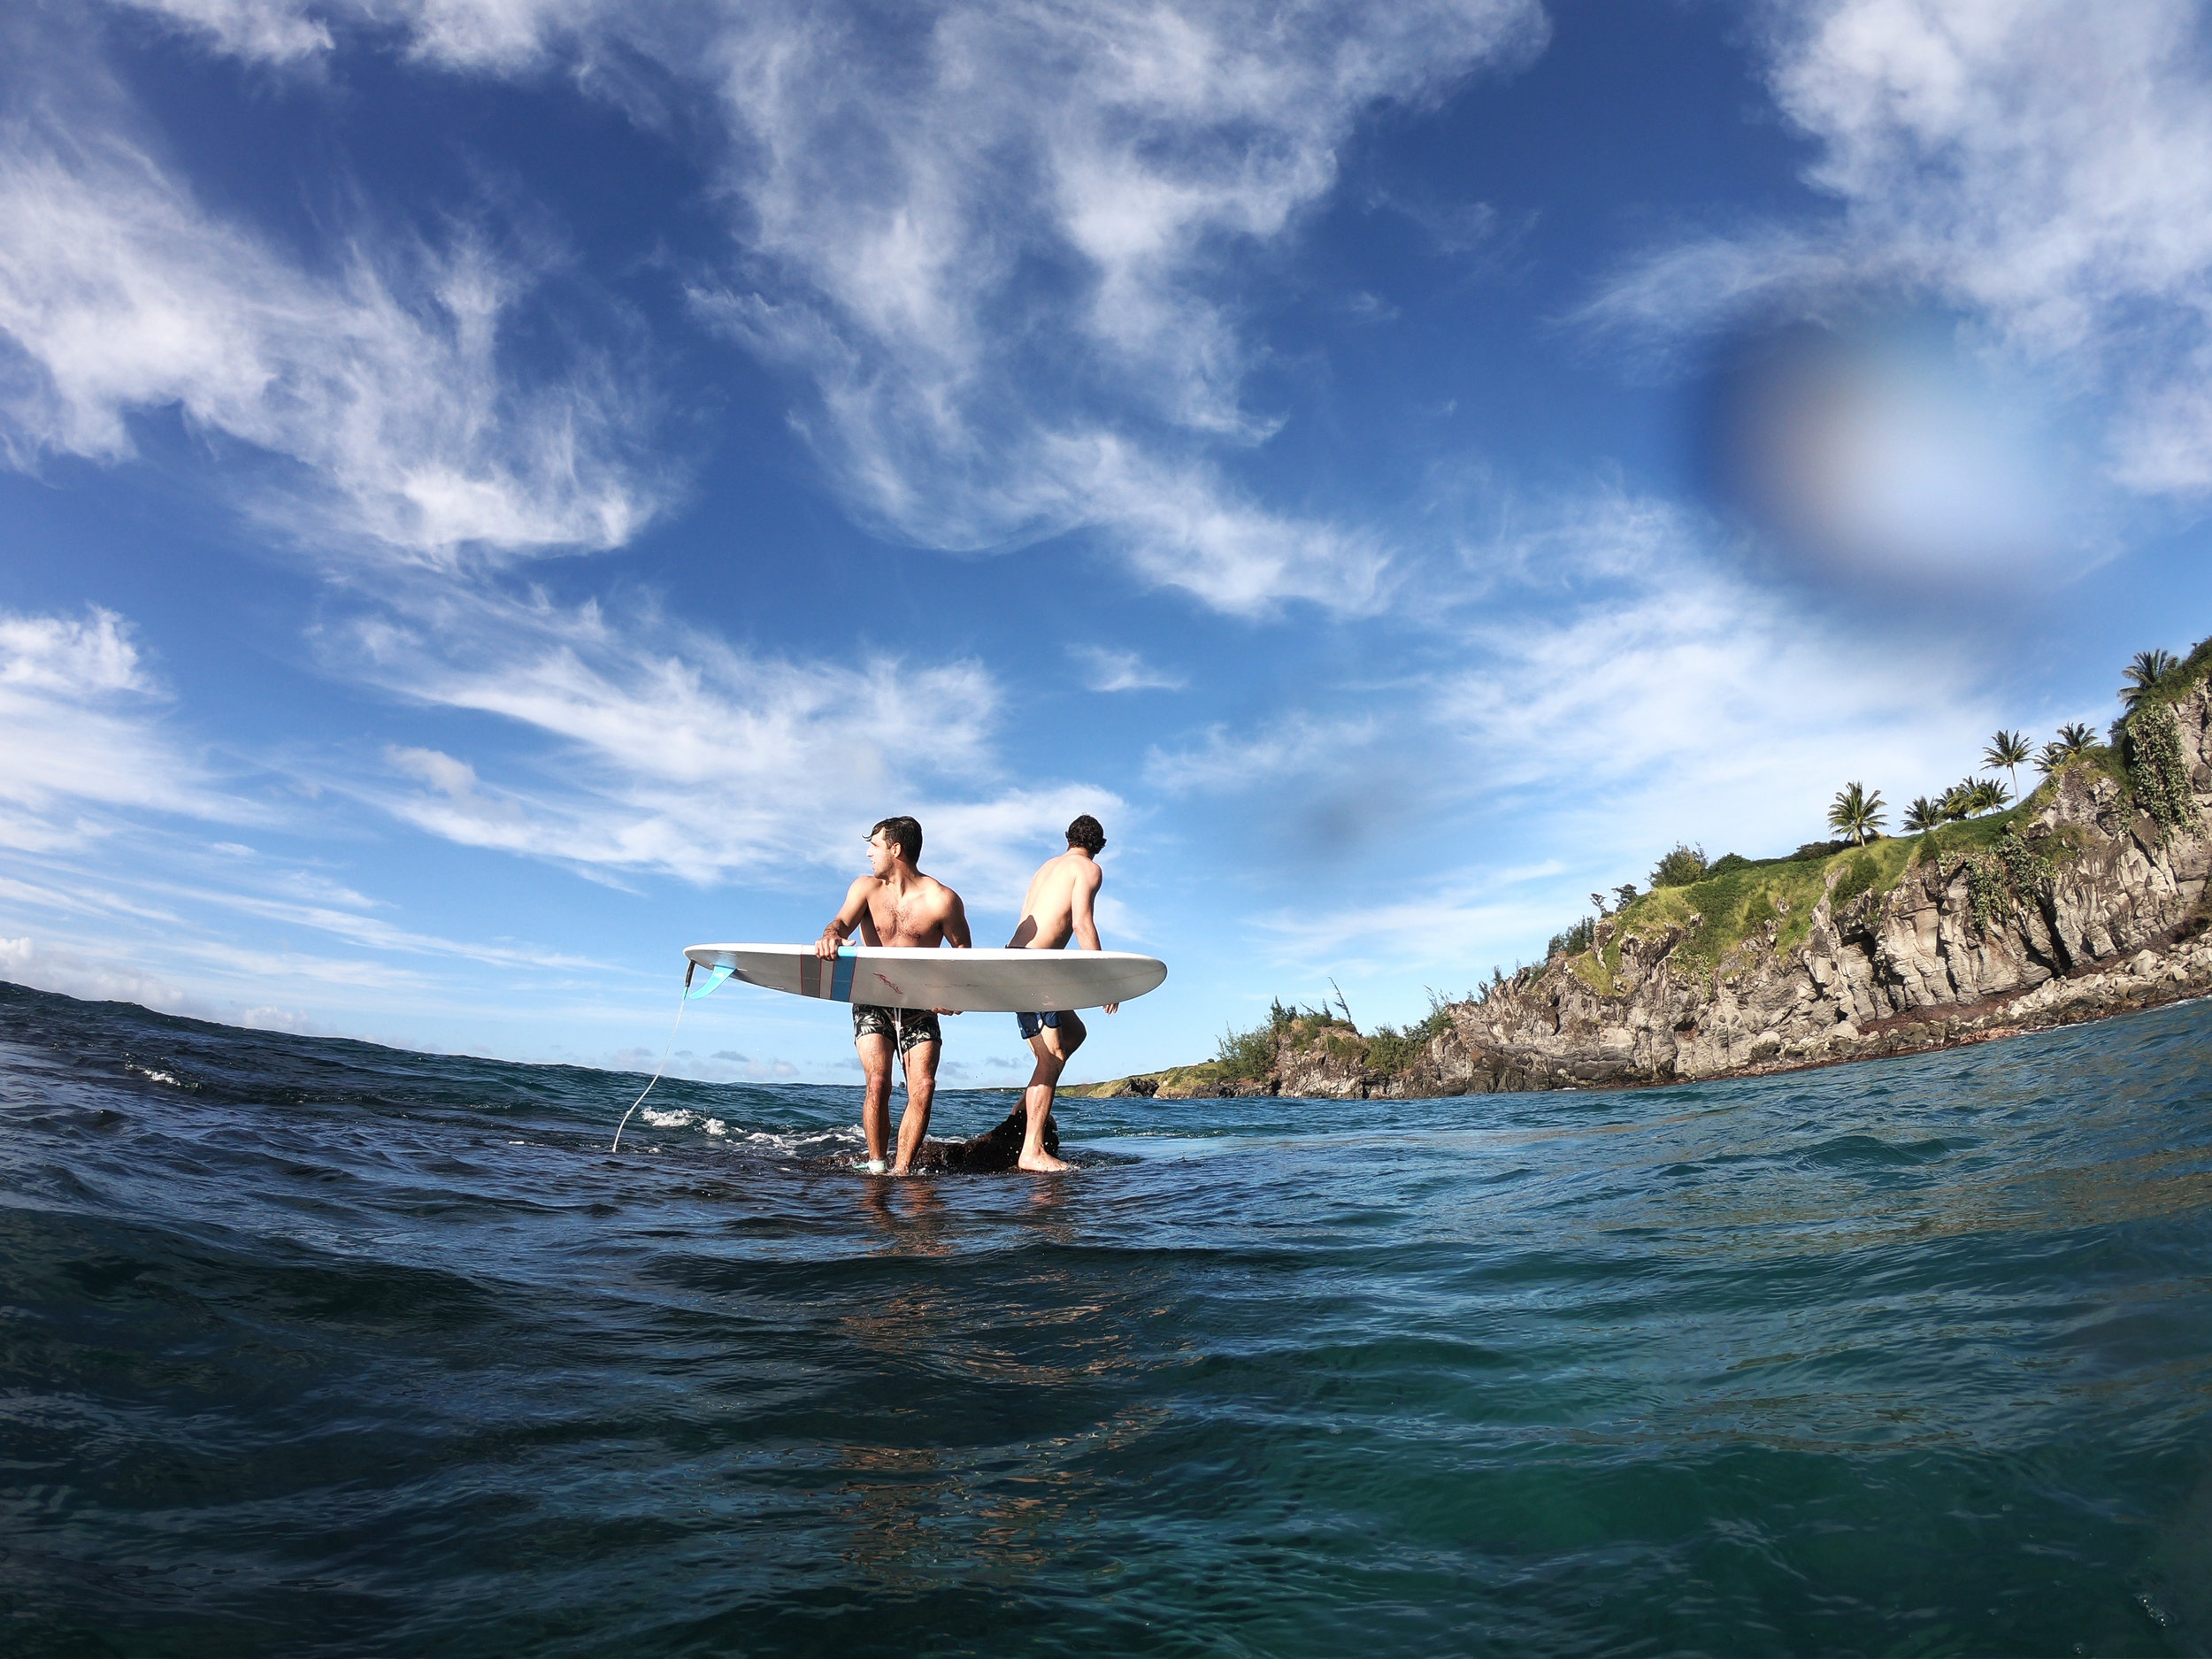 We spent all our afternoons in-between sessions snorkeling and jumping off this rock into waves.